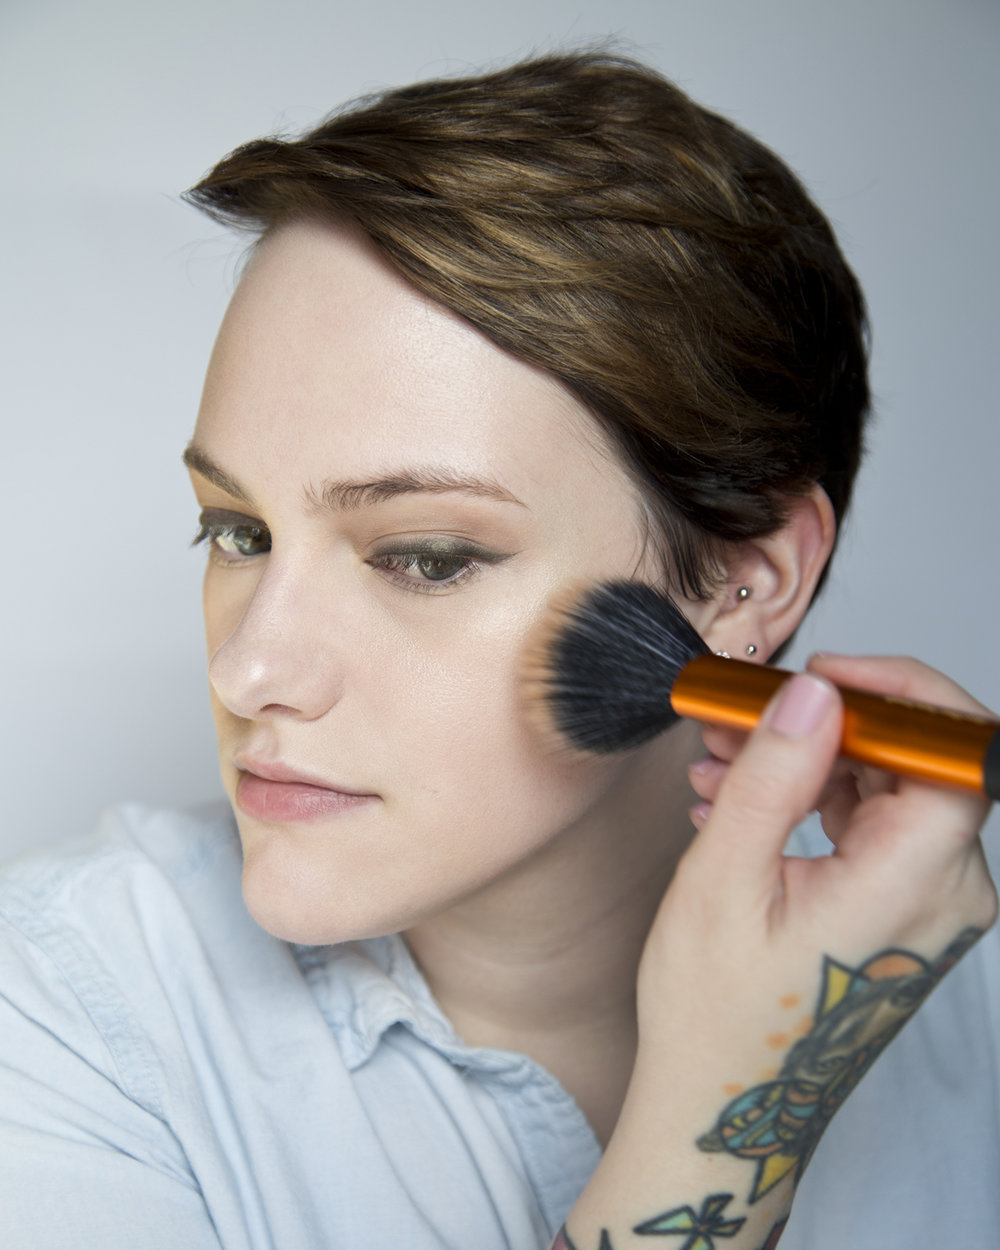 Moving right along and I used a duo-fiber brush from Real Techniques with my Victoria Beckham x Estée Lauder bronzer. I love this brush/bronzer combo - I would definitely recommend a bigger, fluffy brush for bronzer.